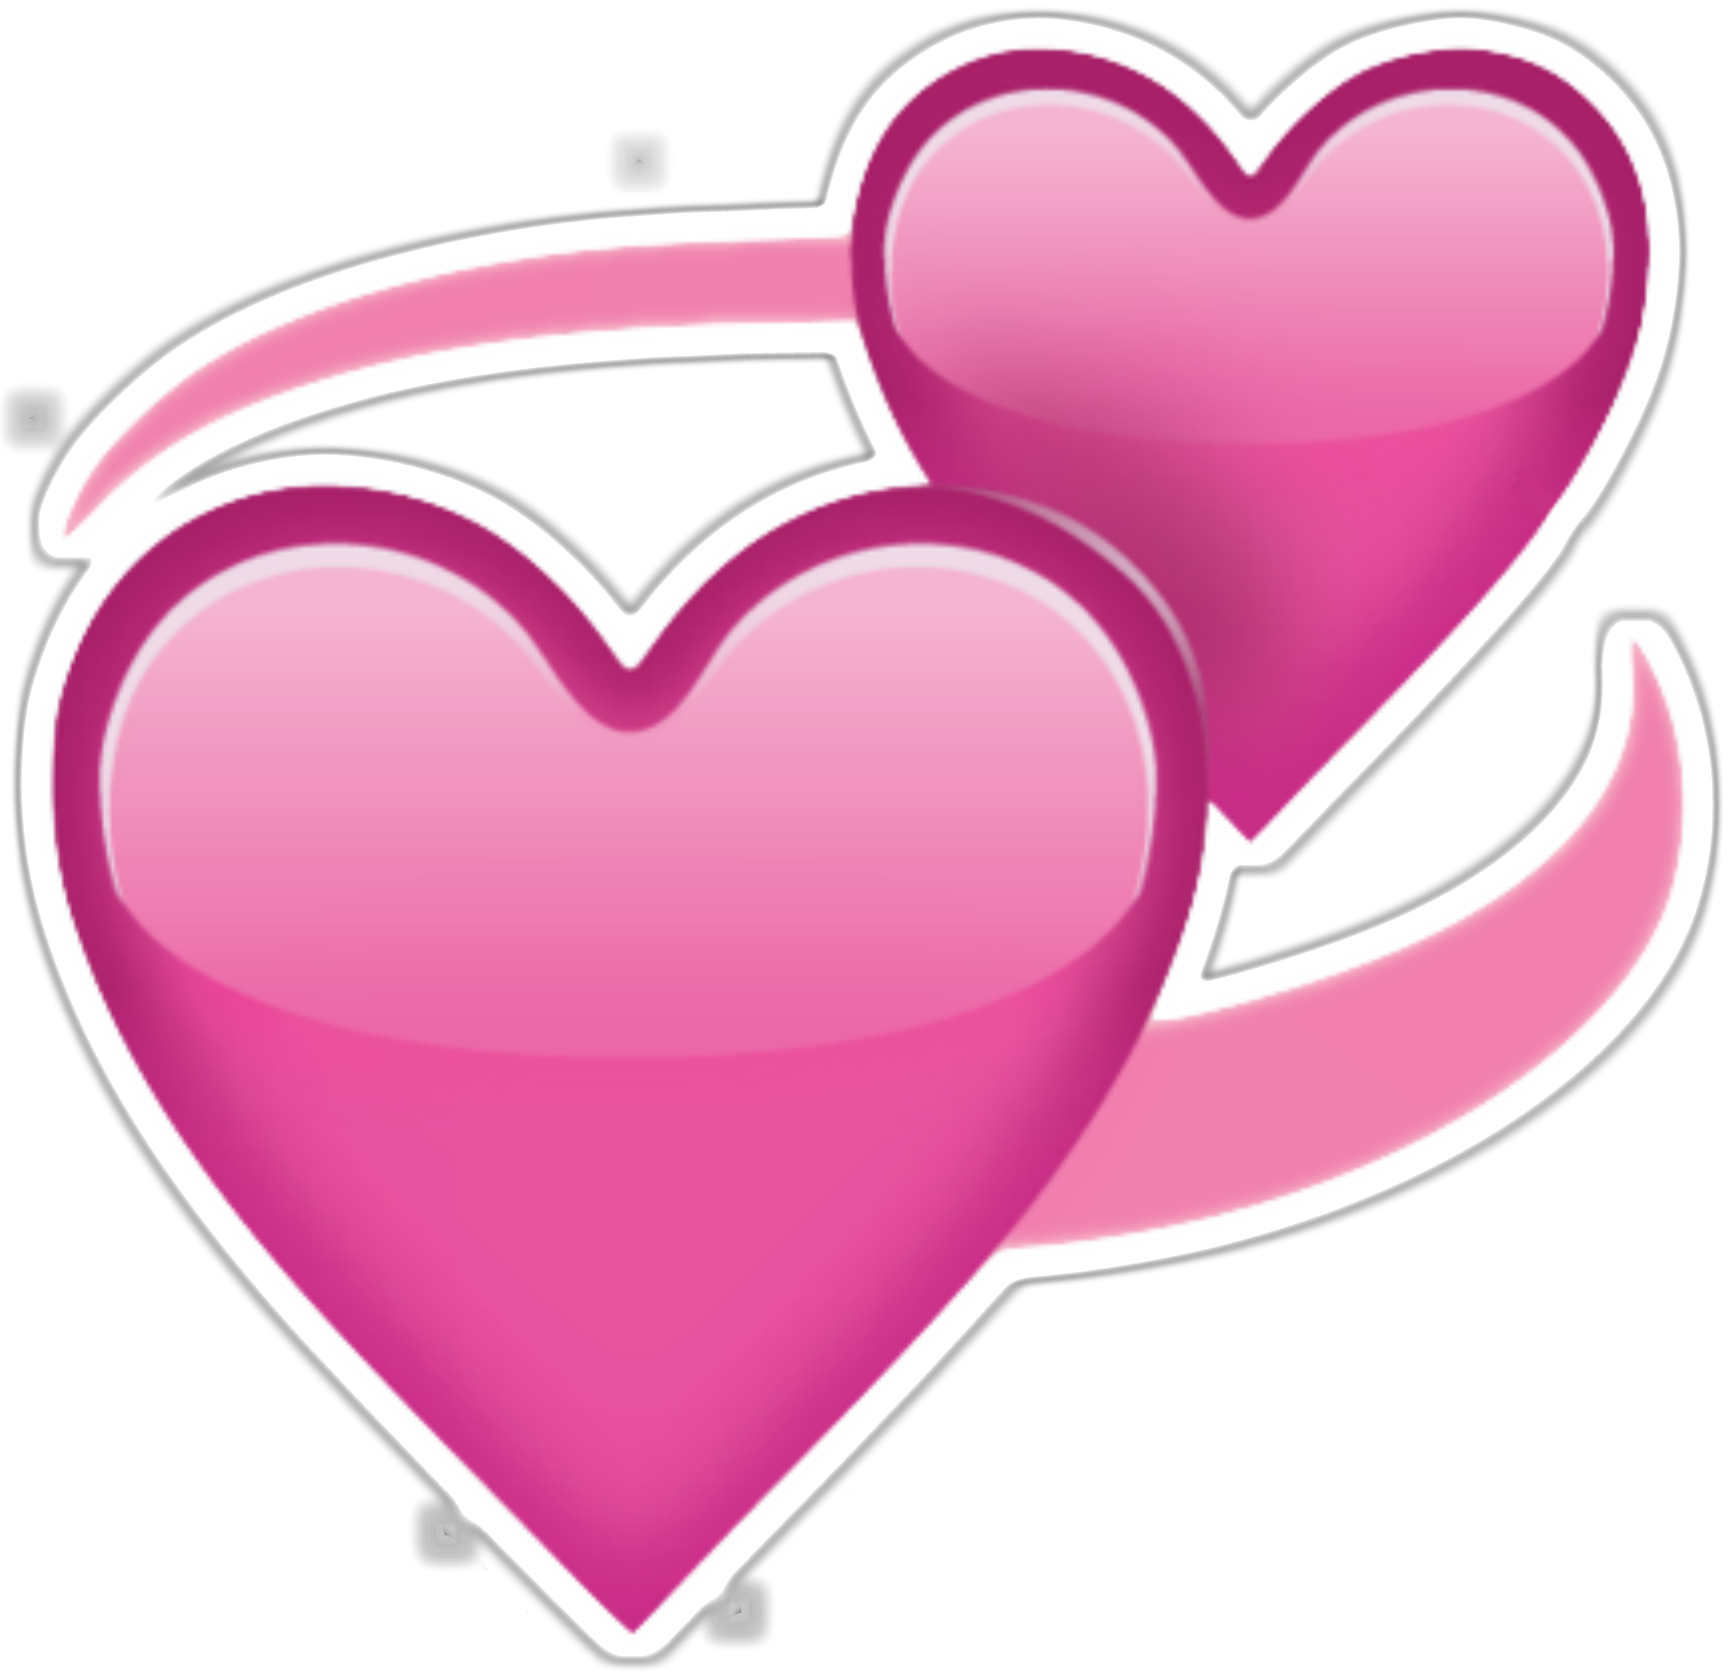 Heart png transparent pink. Two hearts emoji